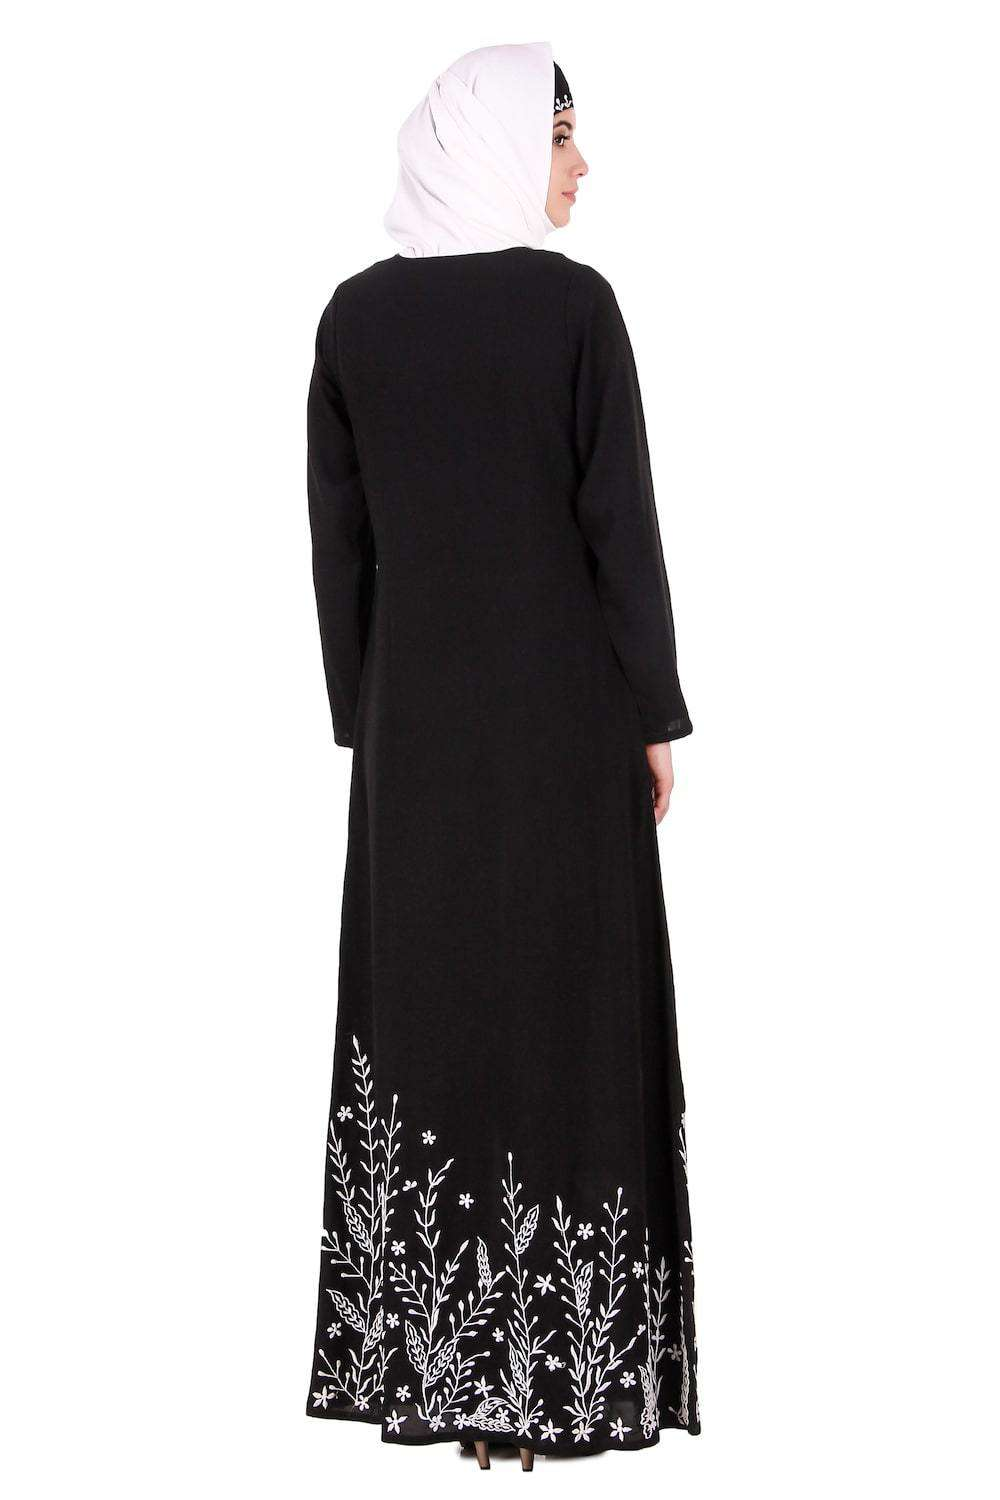 Descending Leaf Pattern Embroidered Abaya Back